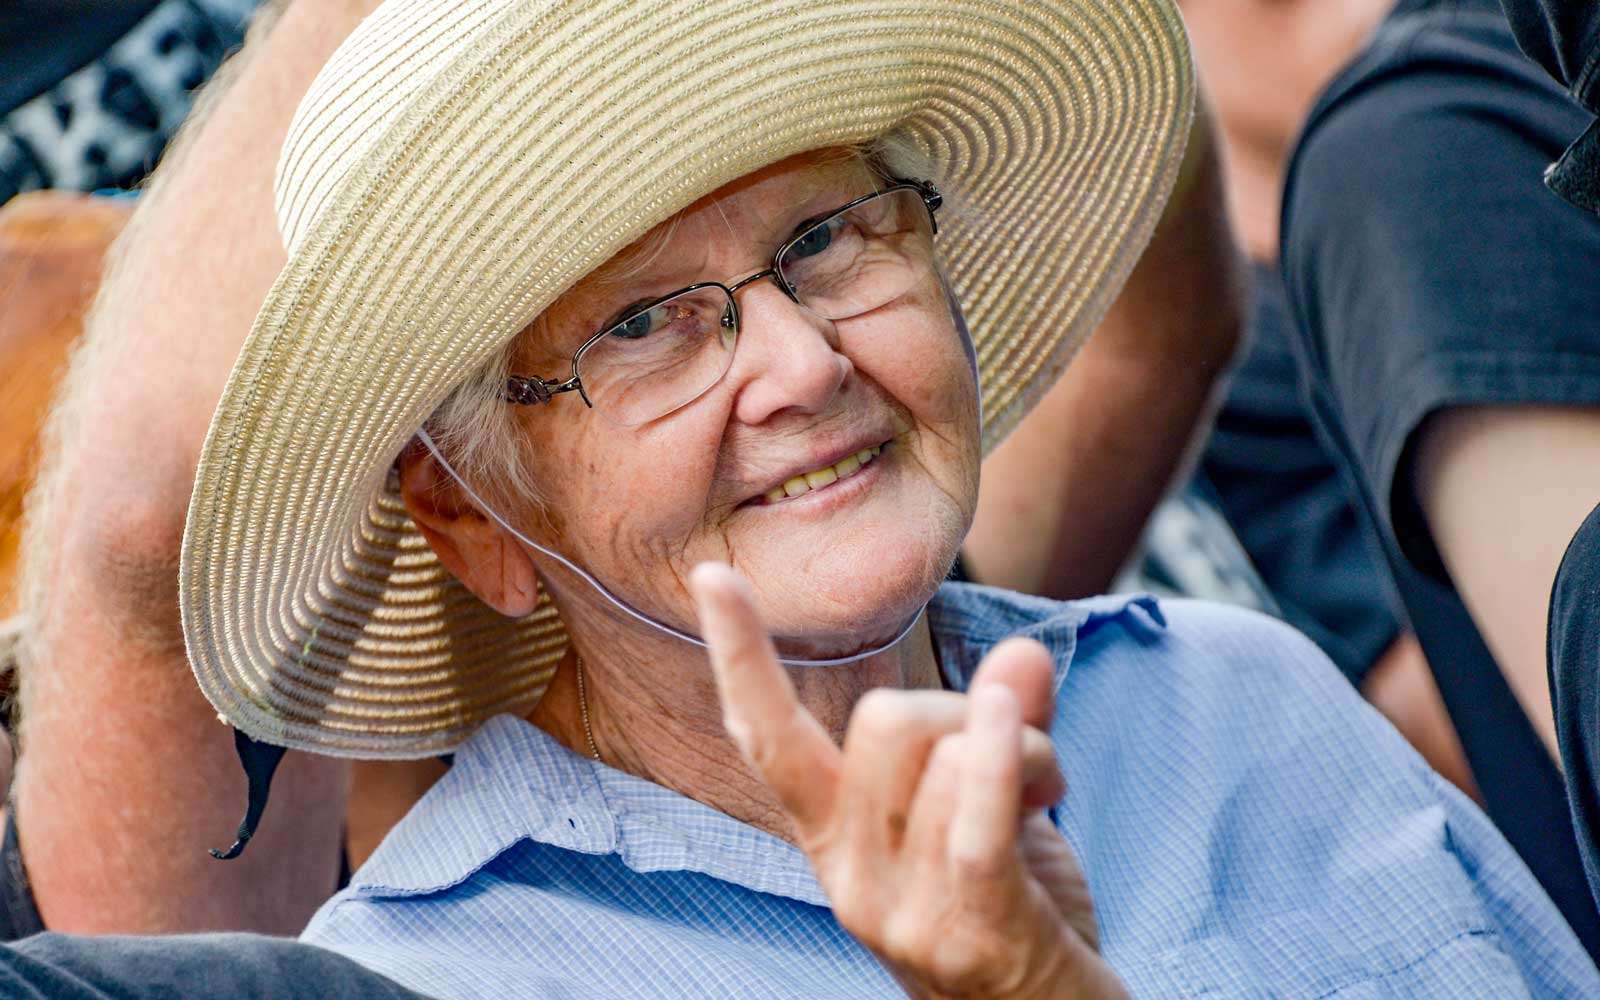 Germany, Wacken: An older visitor of the Wacken Open Air celebrates the performance of the local fire brigade band with the metal greeting, the  devil horns  hand gesture.